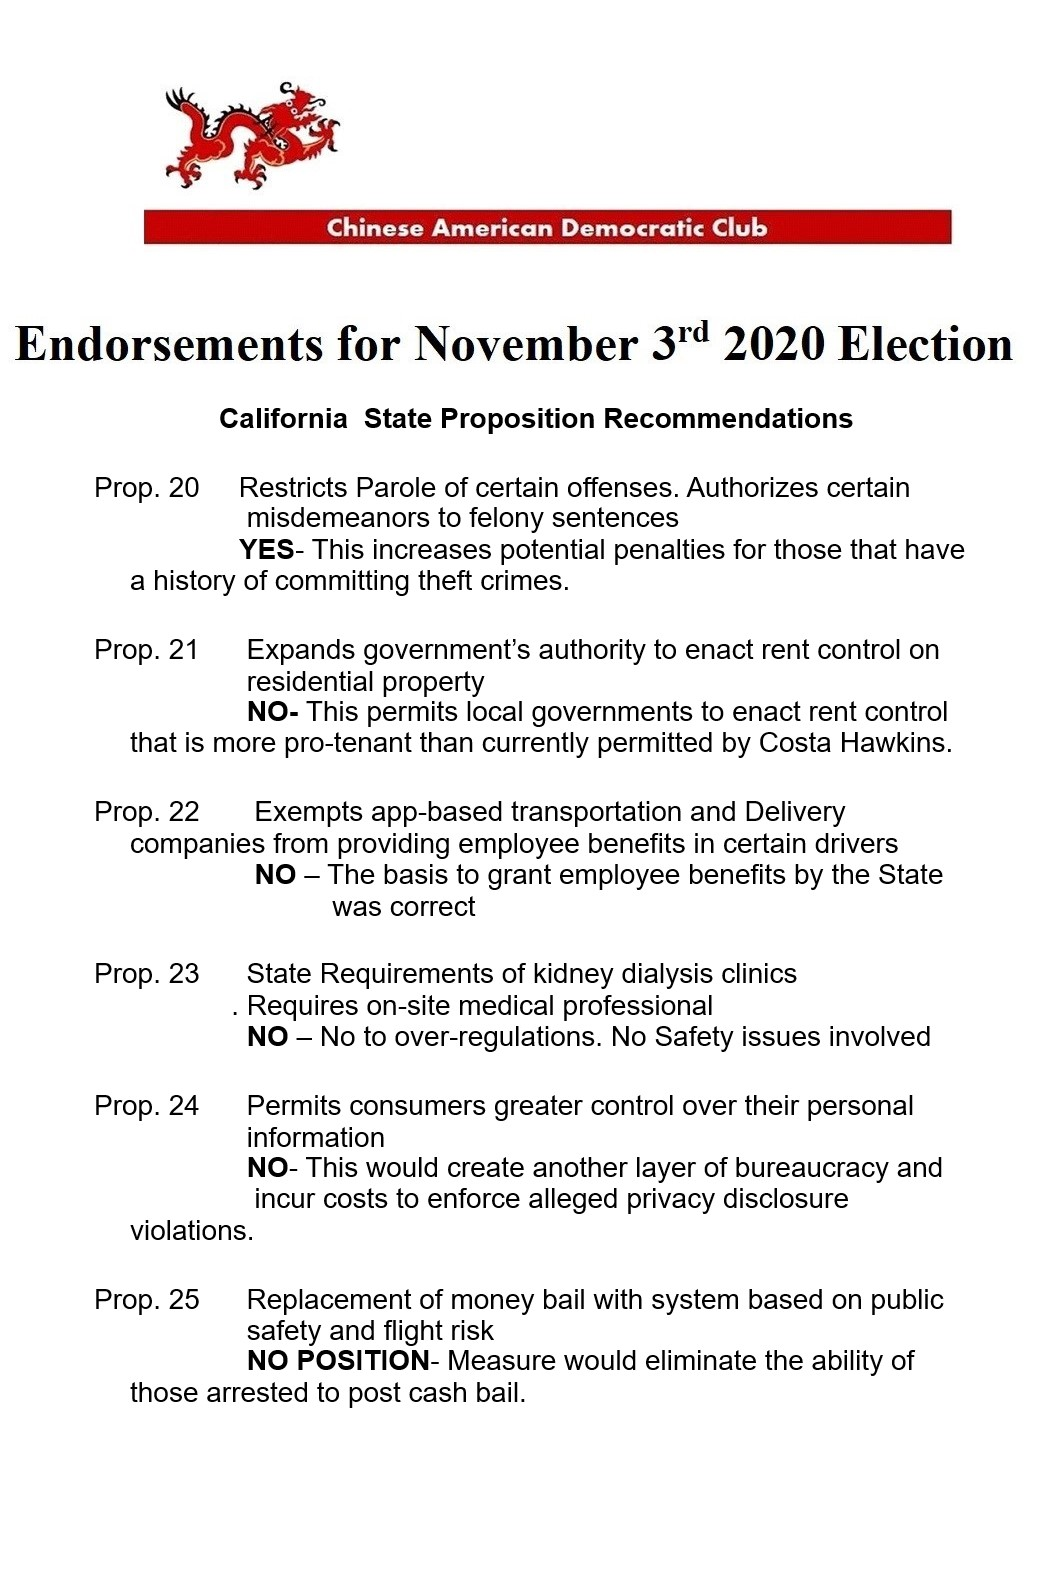 Endorsements_11-2020_Issues2.jpg